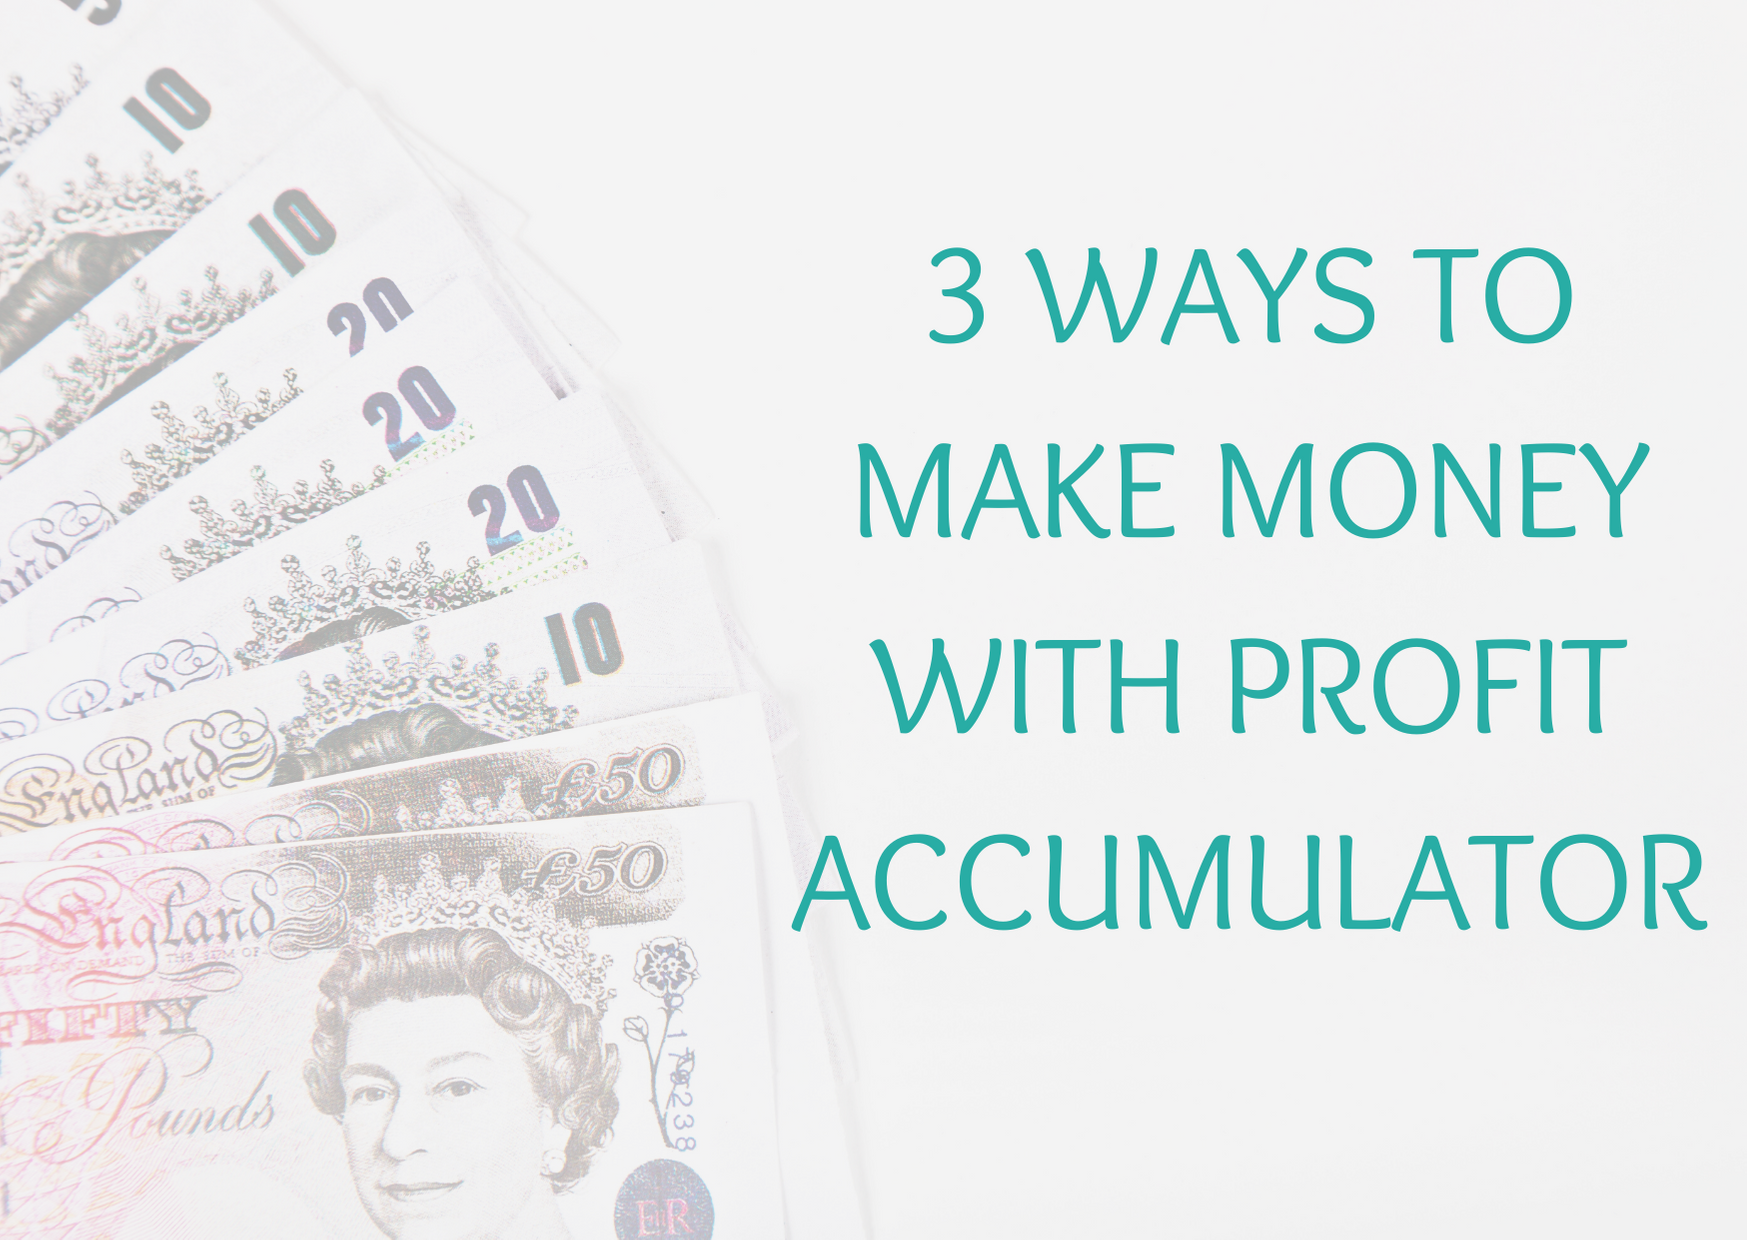 3 ways to make money online in the UK with Profit Accumulator